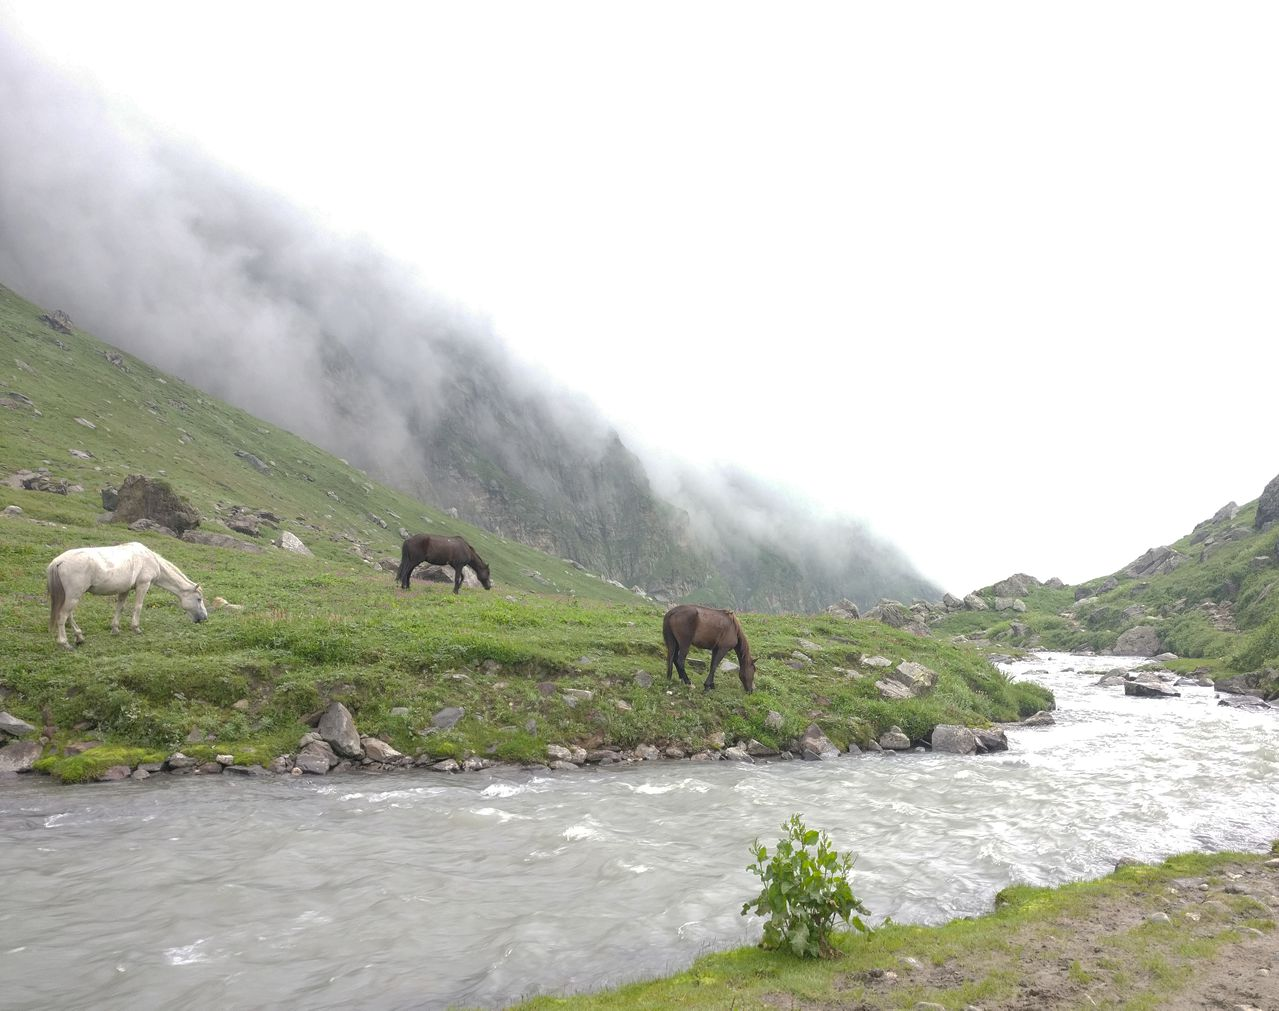 Horses grazing green grass beside the stream with mist covering the top of the mountians in left